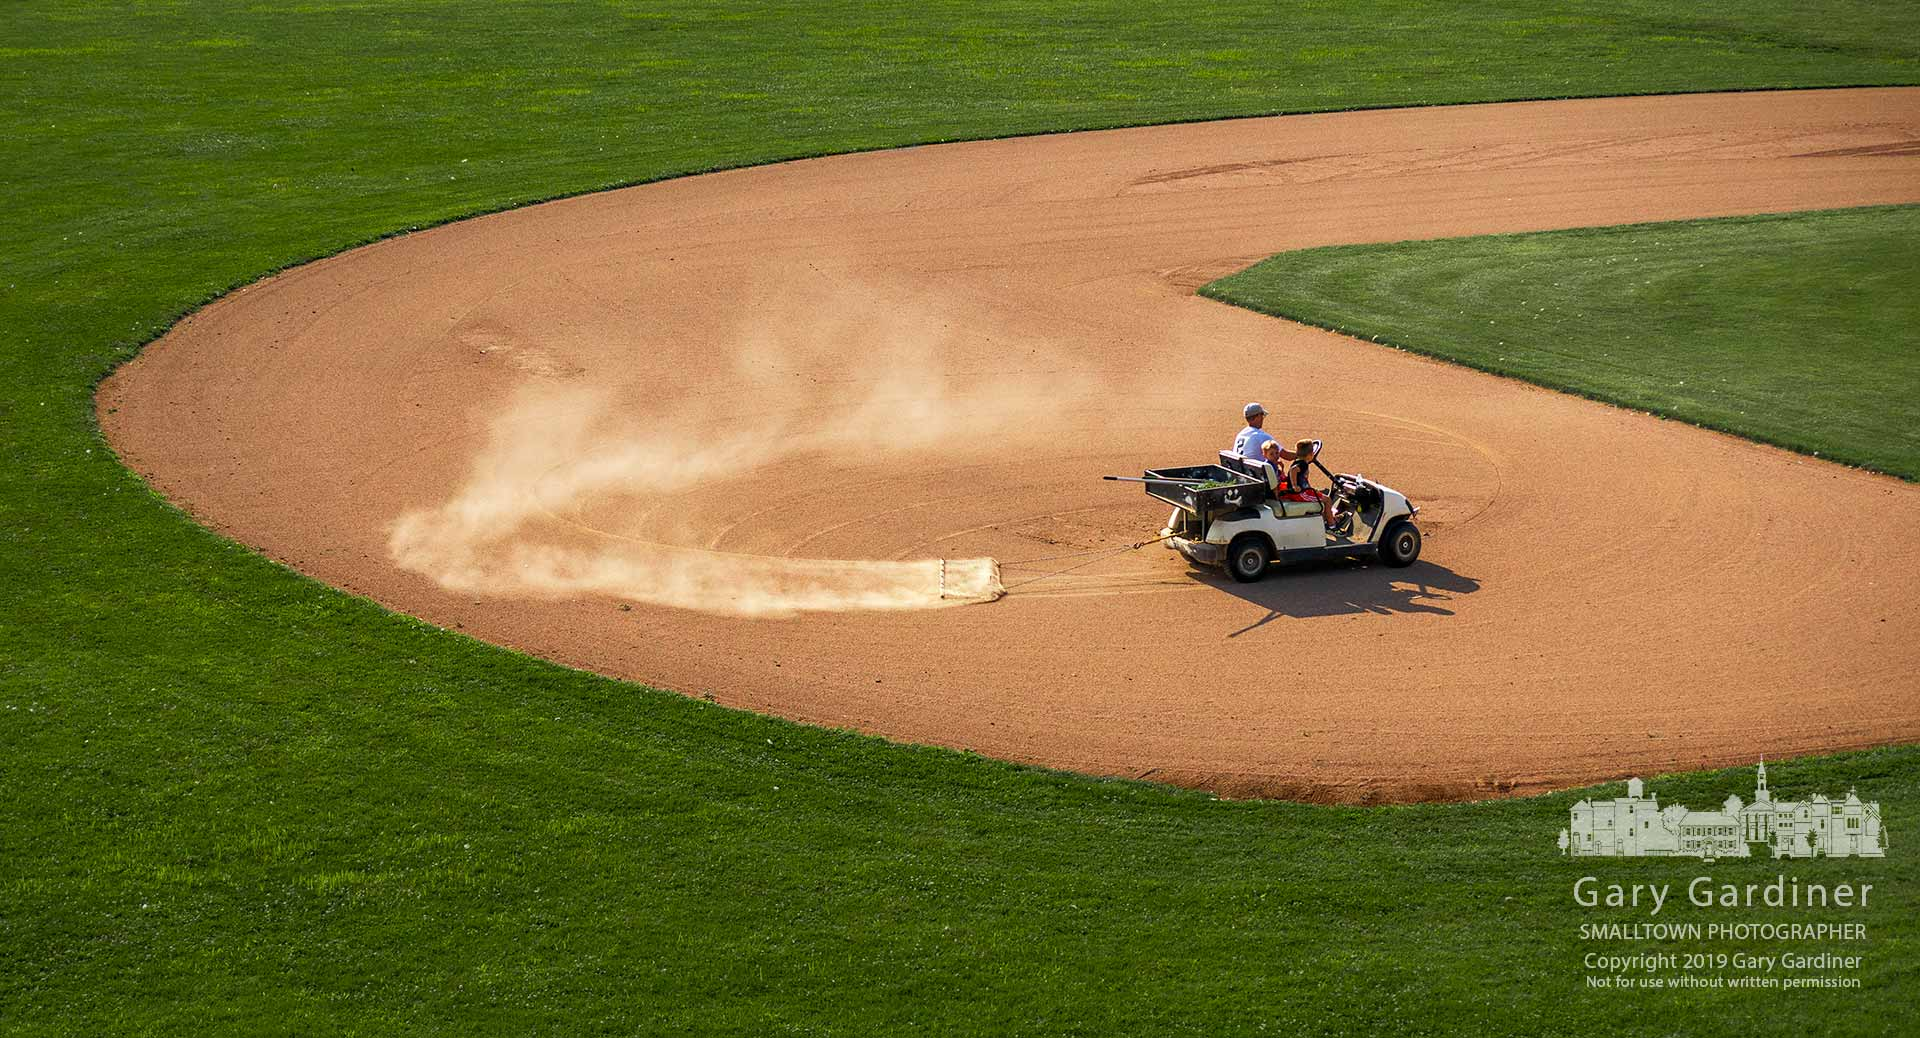 Two young boys get a ride-along as the Westerville North groundskeeper drags the infield prepping it for the next game. My Final Photo for Aug. 2, 2019.